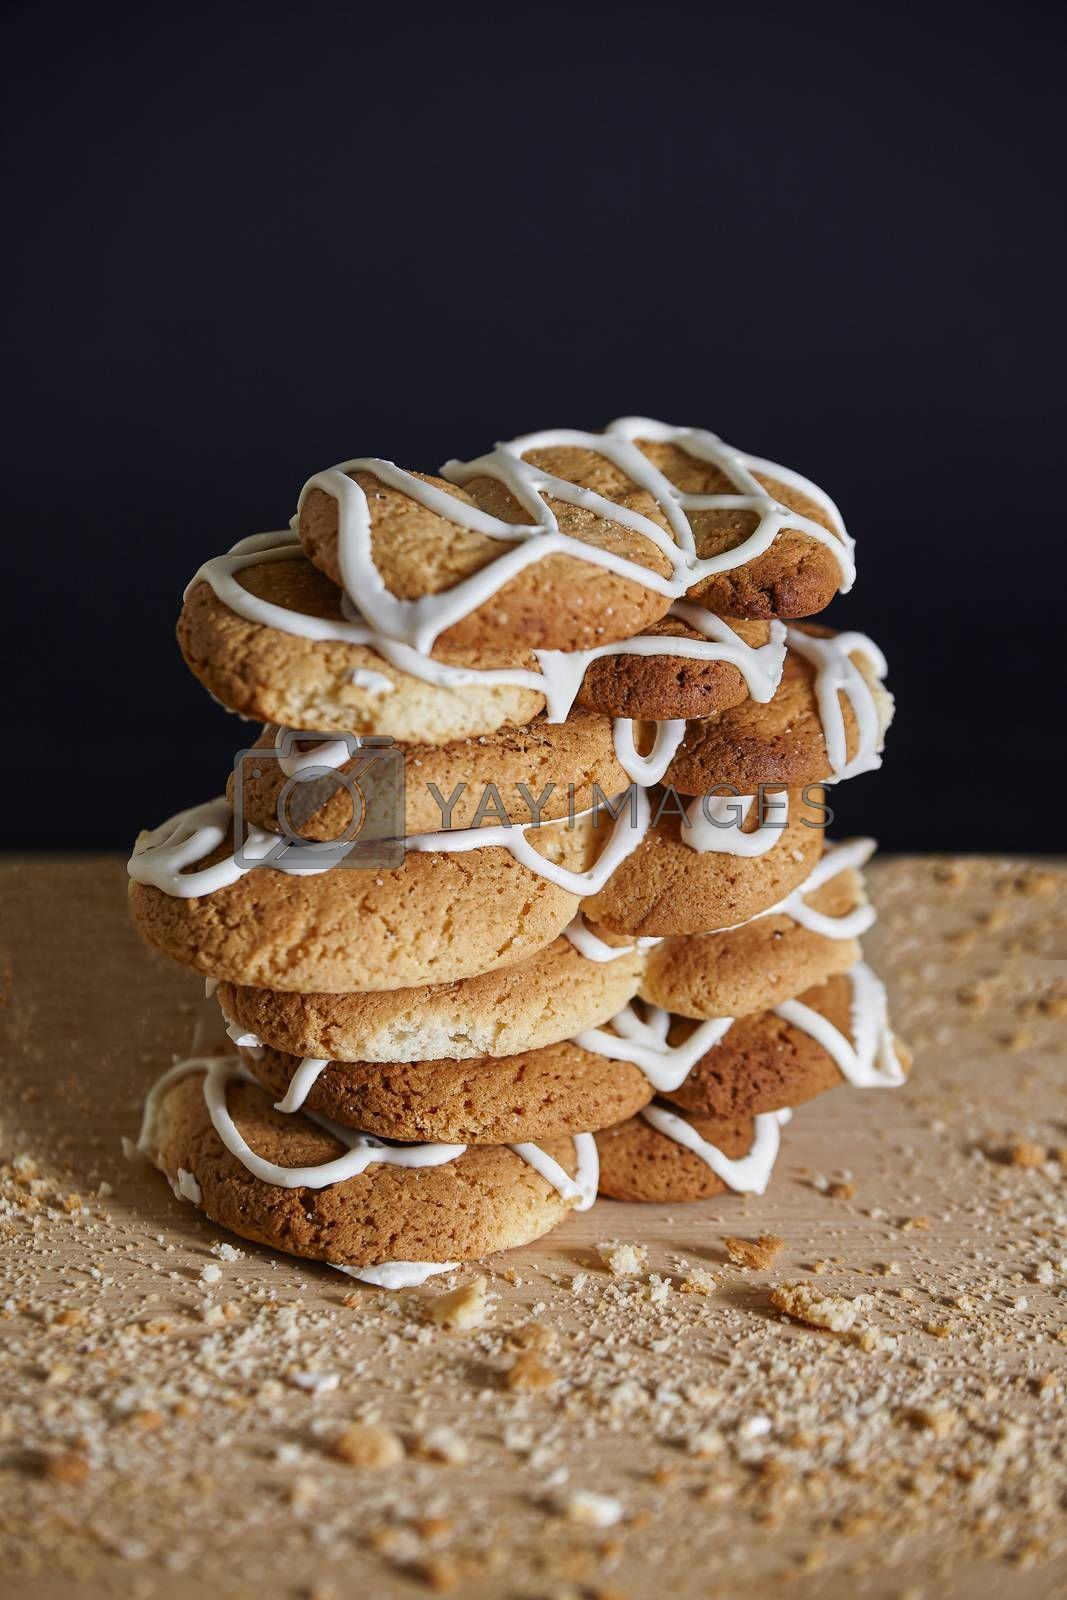 Stack of handmade cookies on wooden table, studio photo